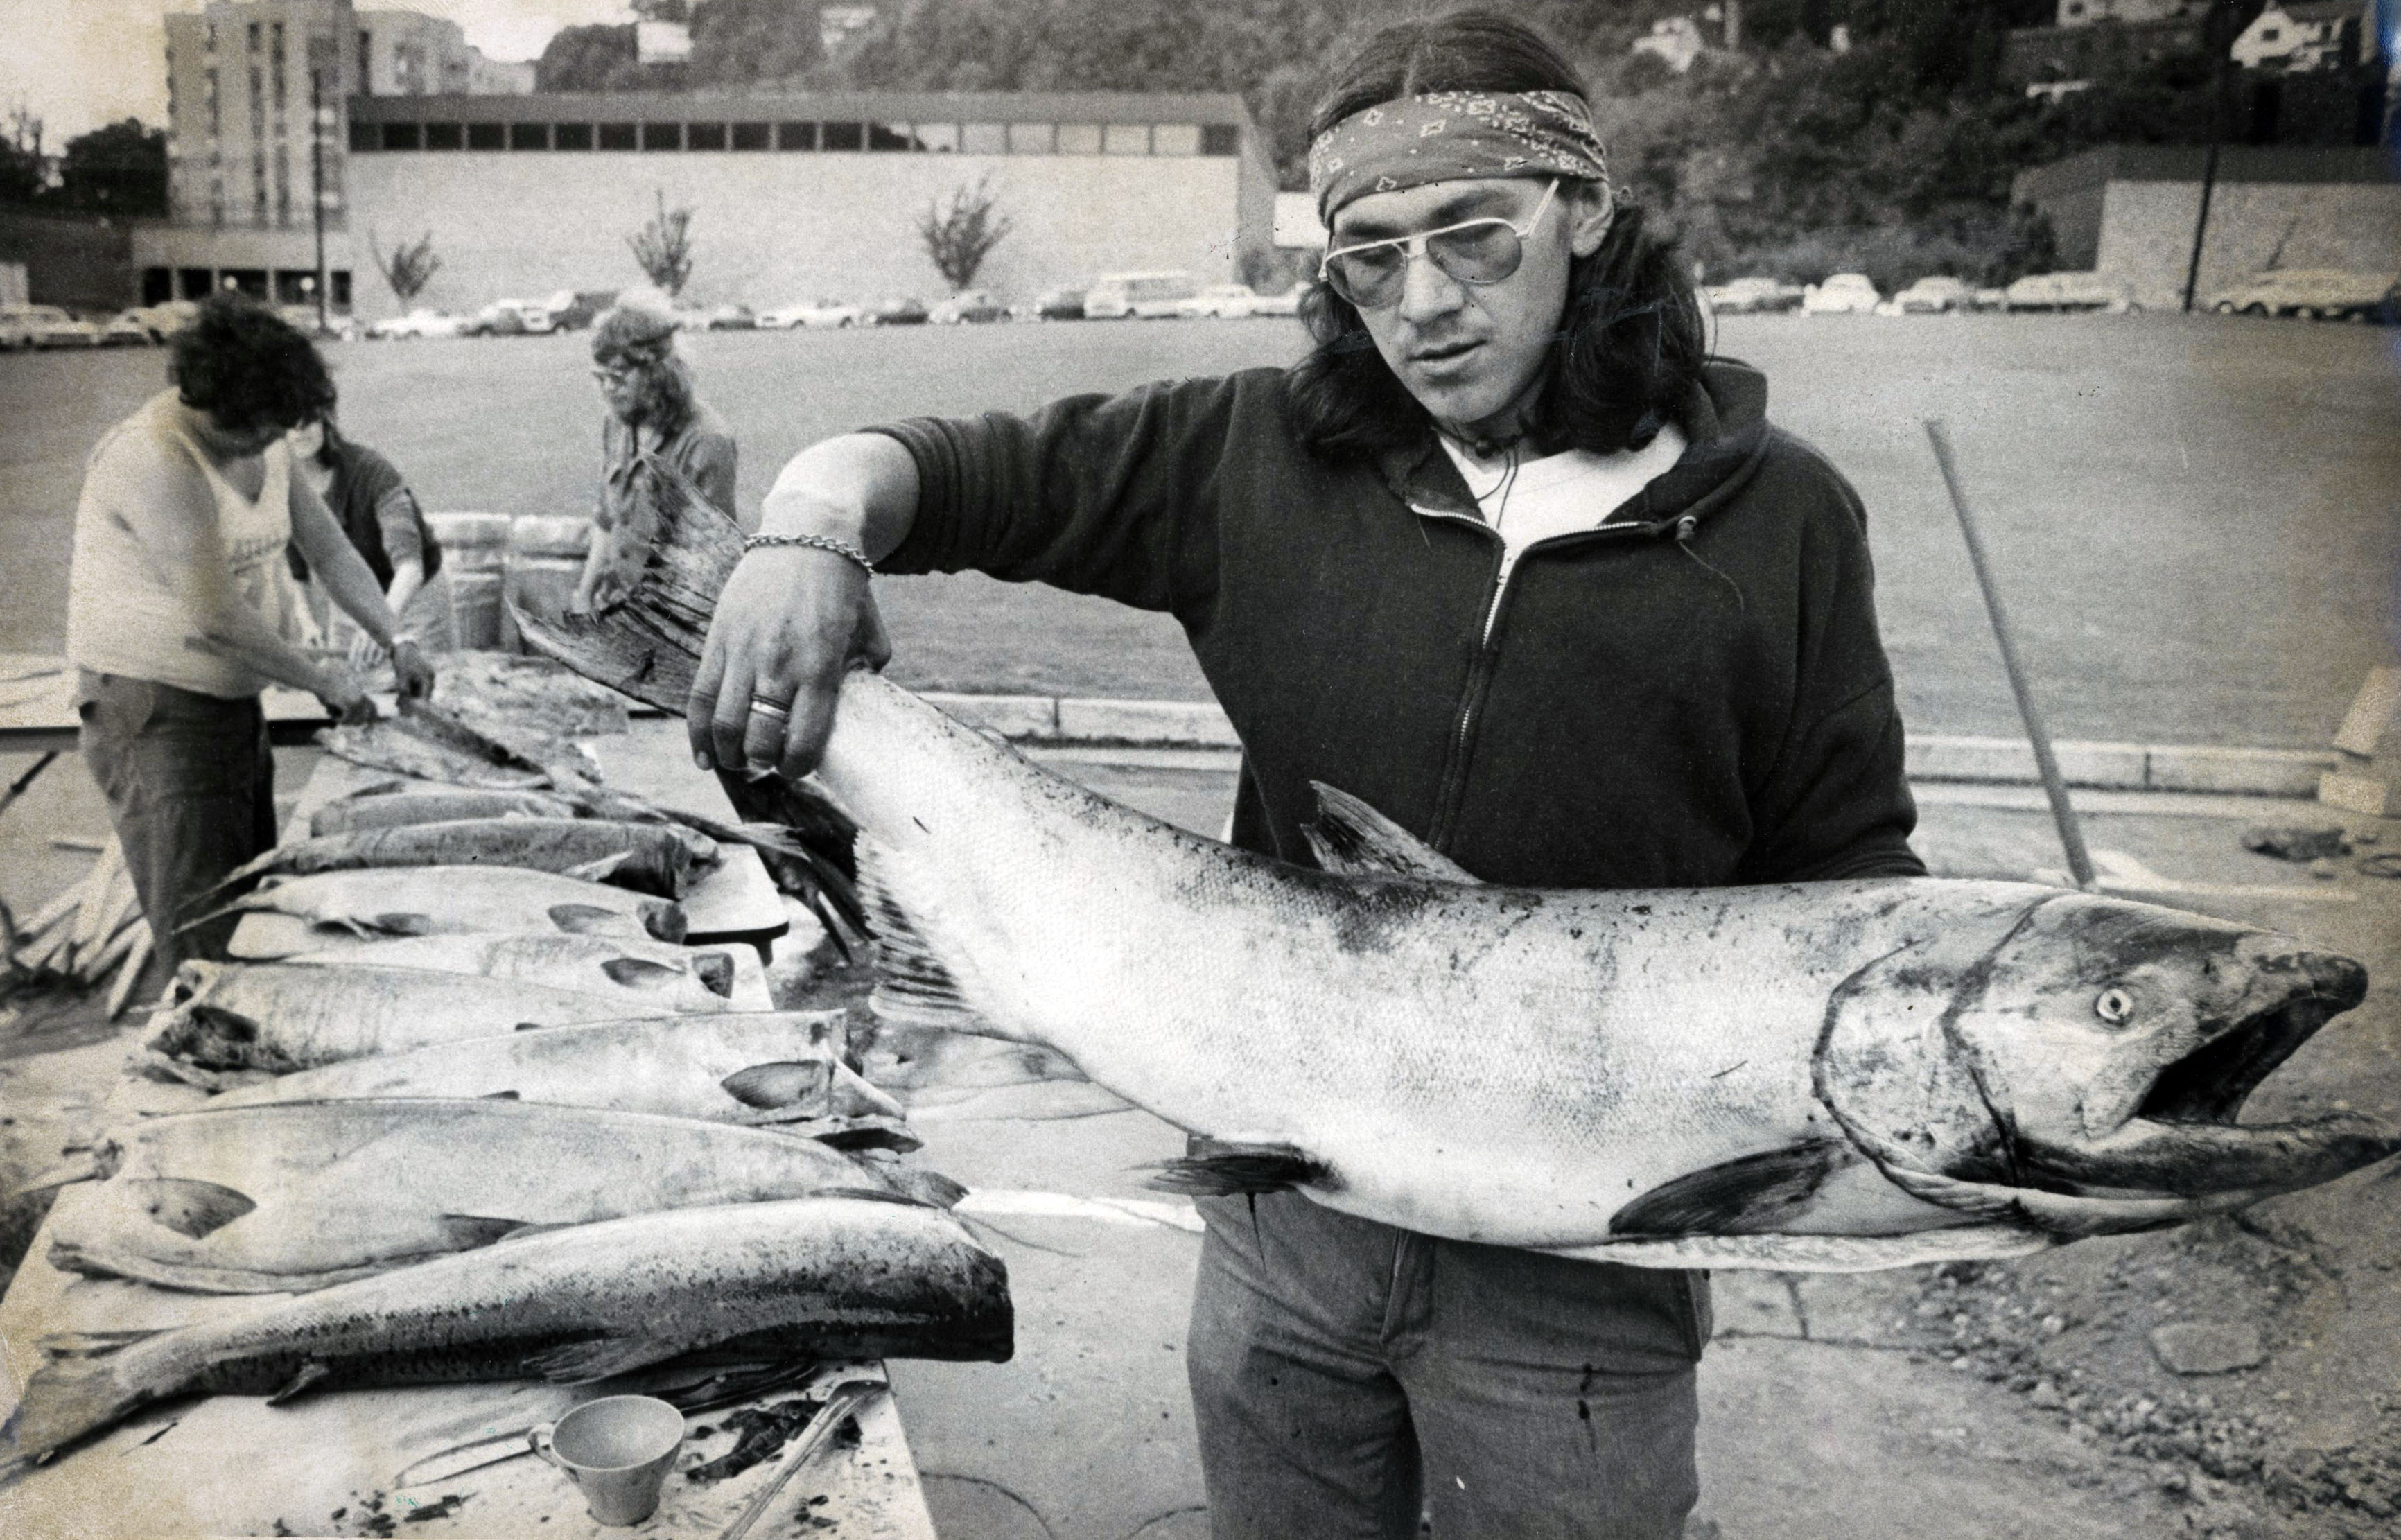 Mike Hunter attends the PSU salmon bake with the United Indian Students of Higher Education, 1978